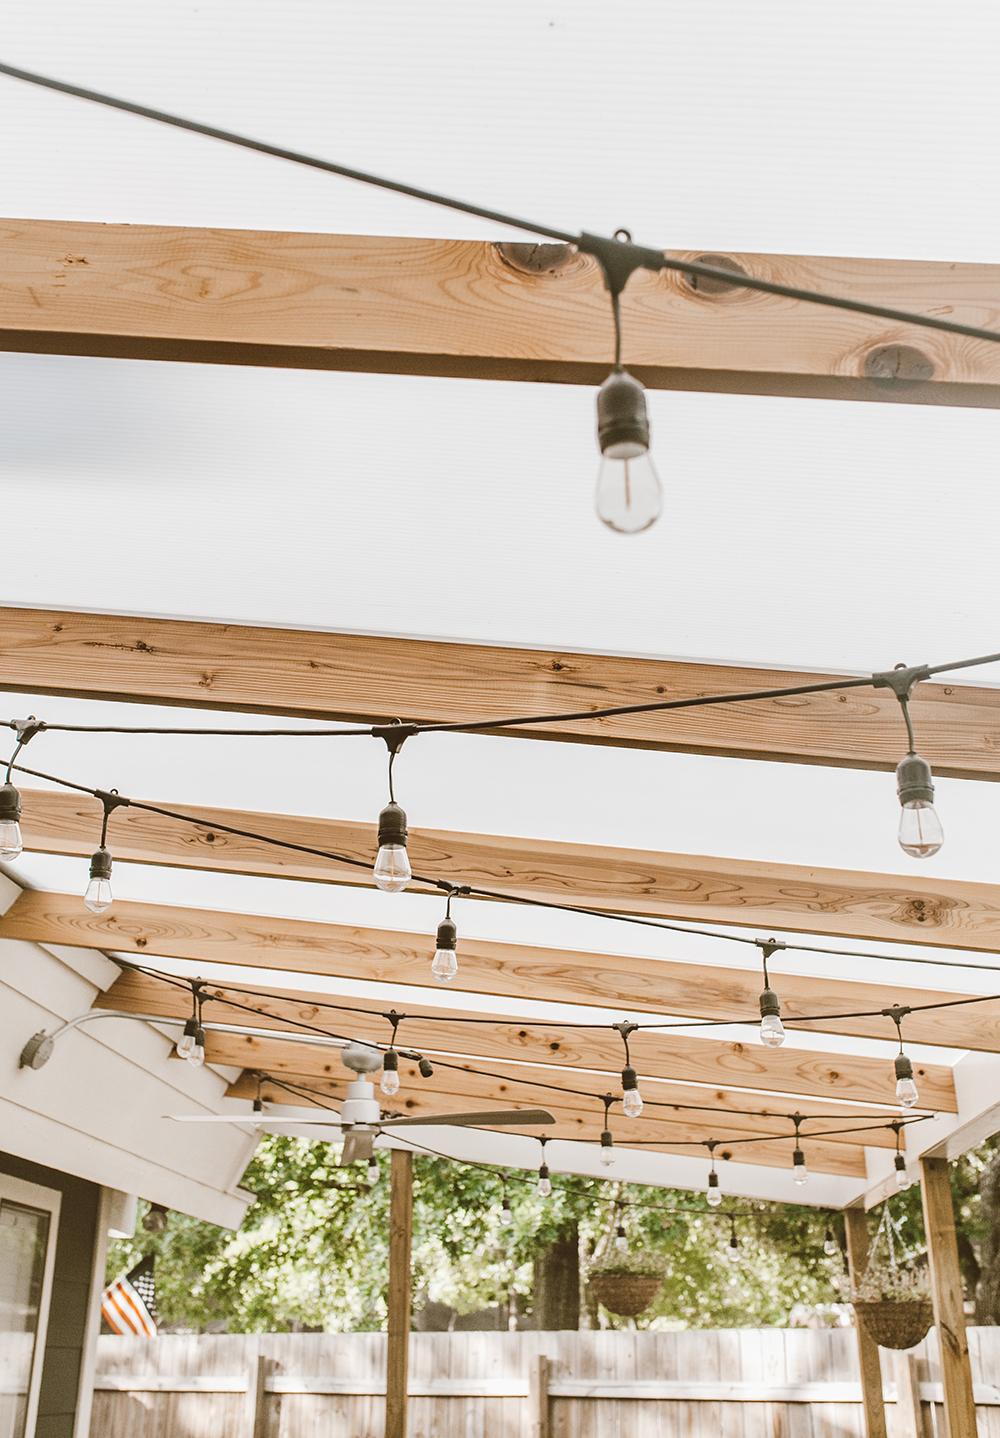 livvyland-blog-olivia-watson-backyard-patio-renovation-cover-polygal-roof-strand-lights-1